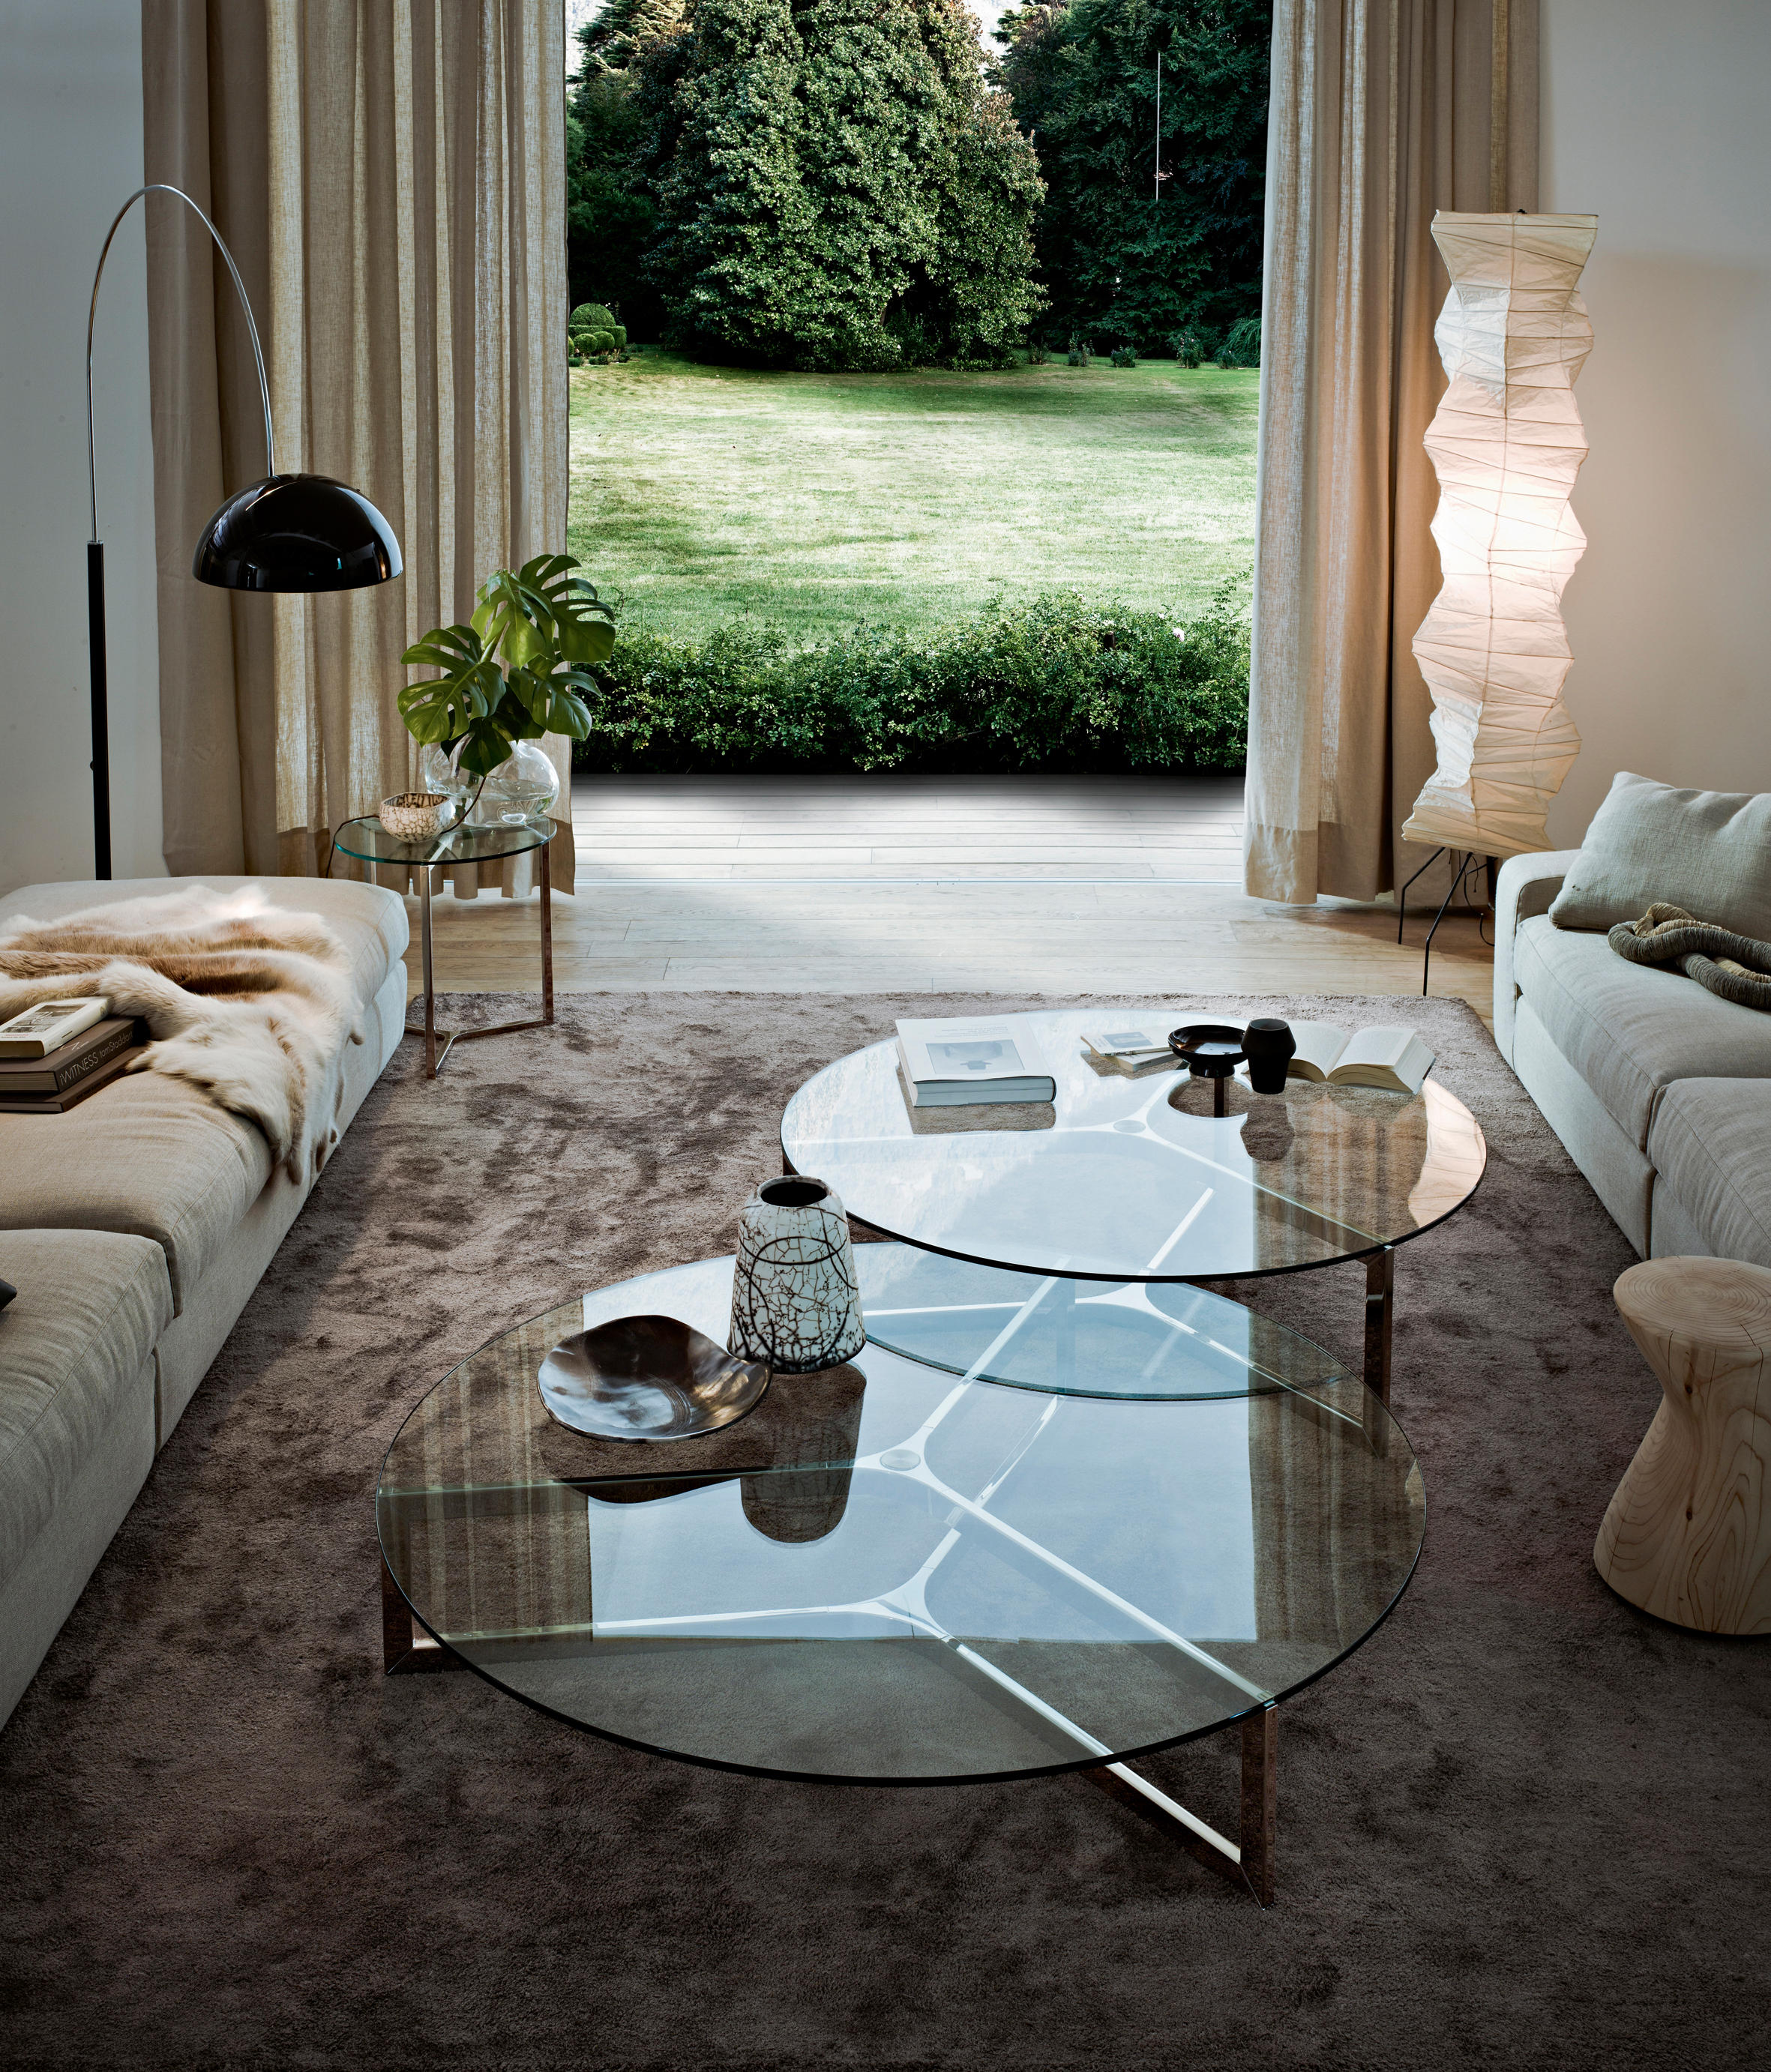 RAJ 1 Lounge tables from Gallotti&Radice